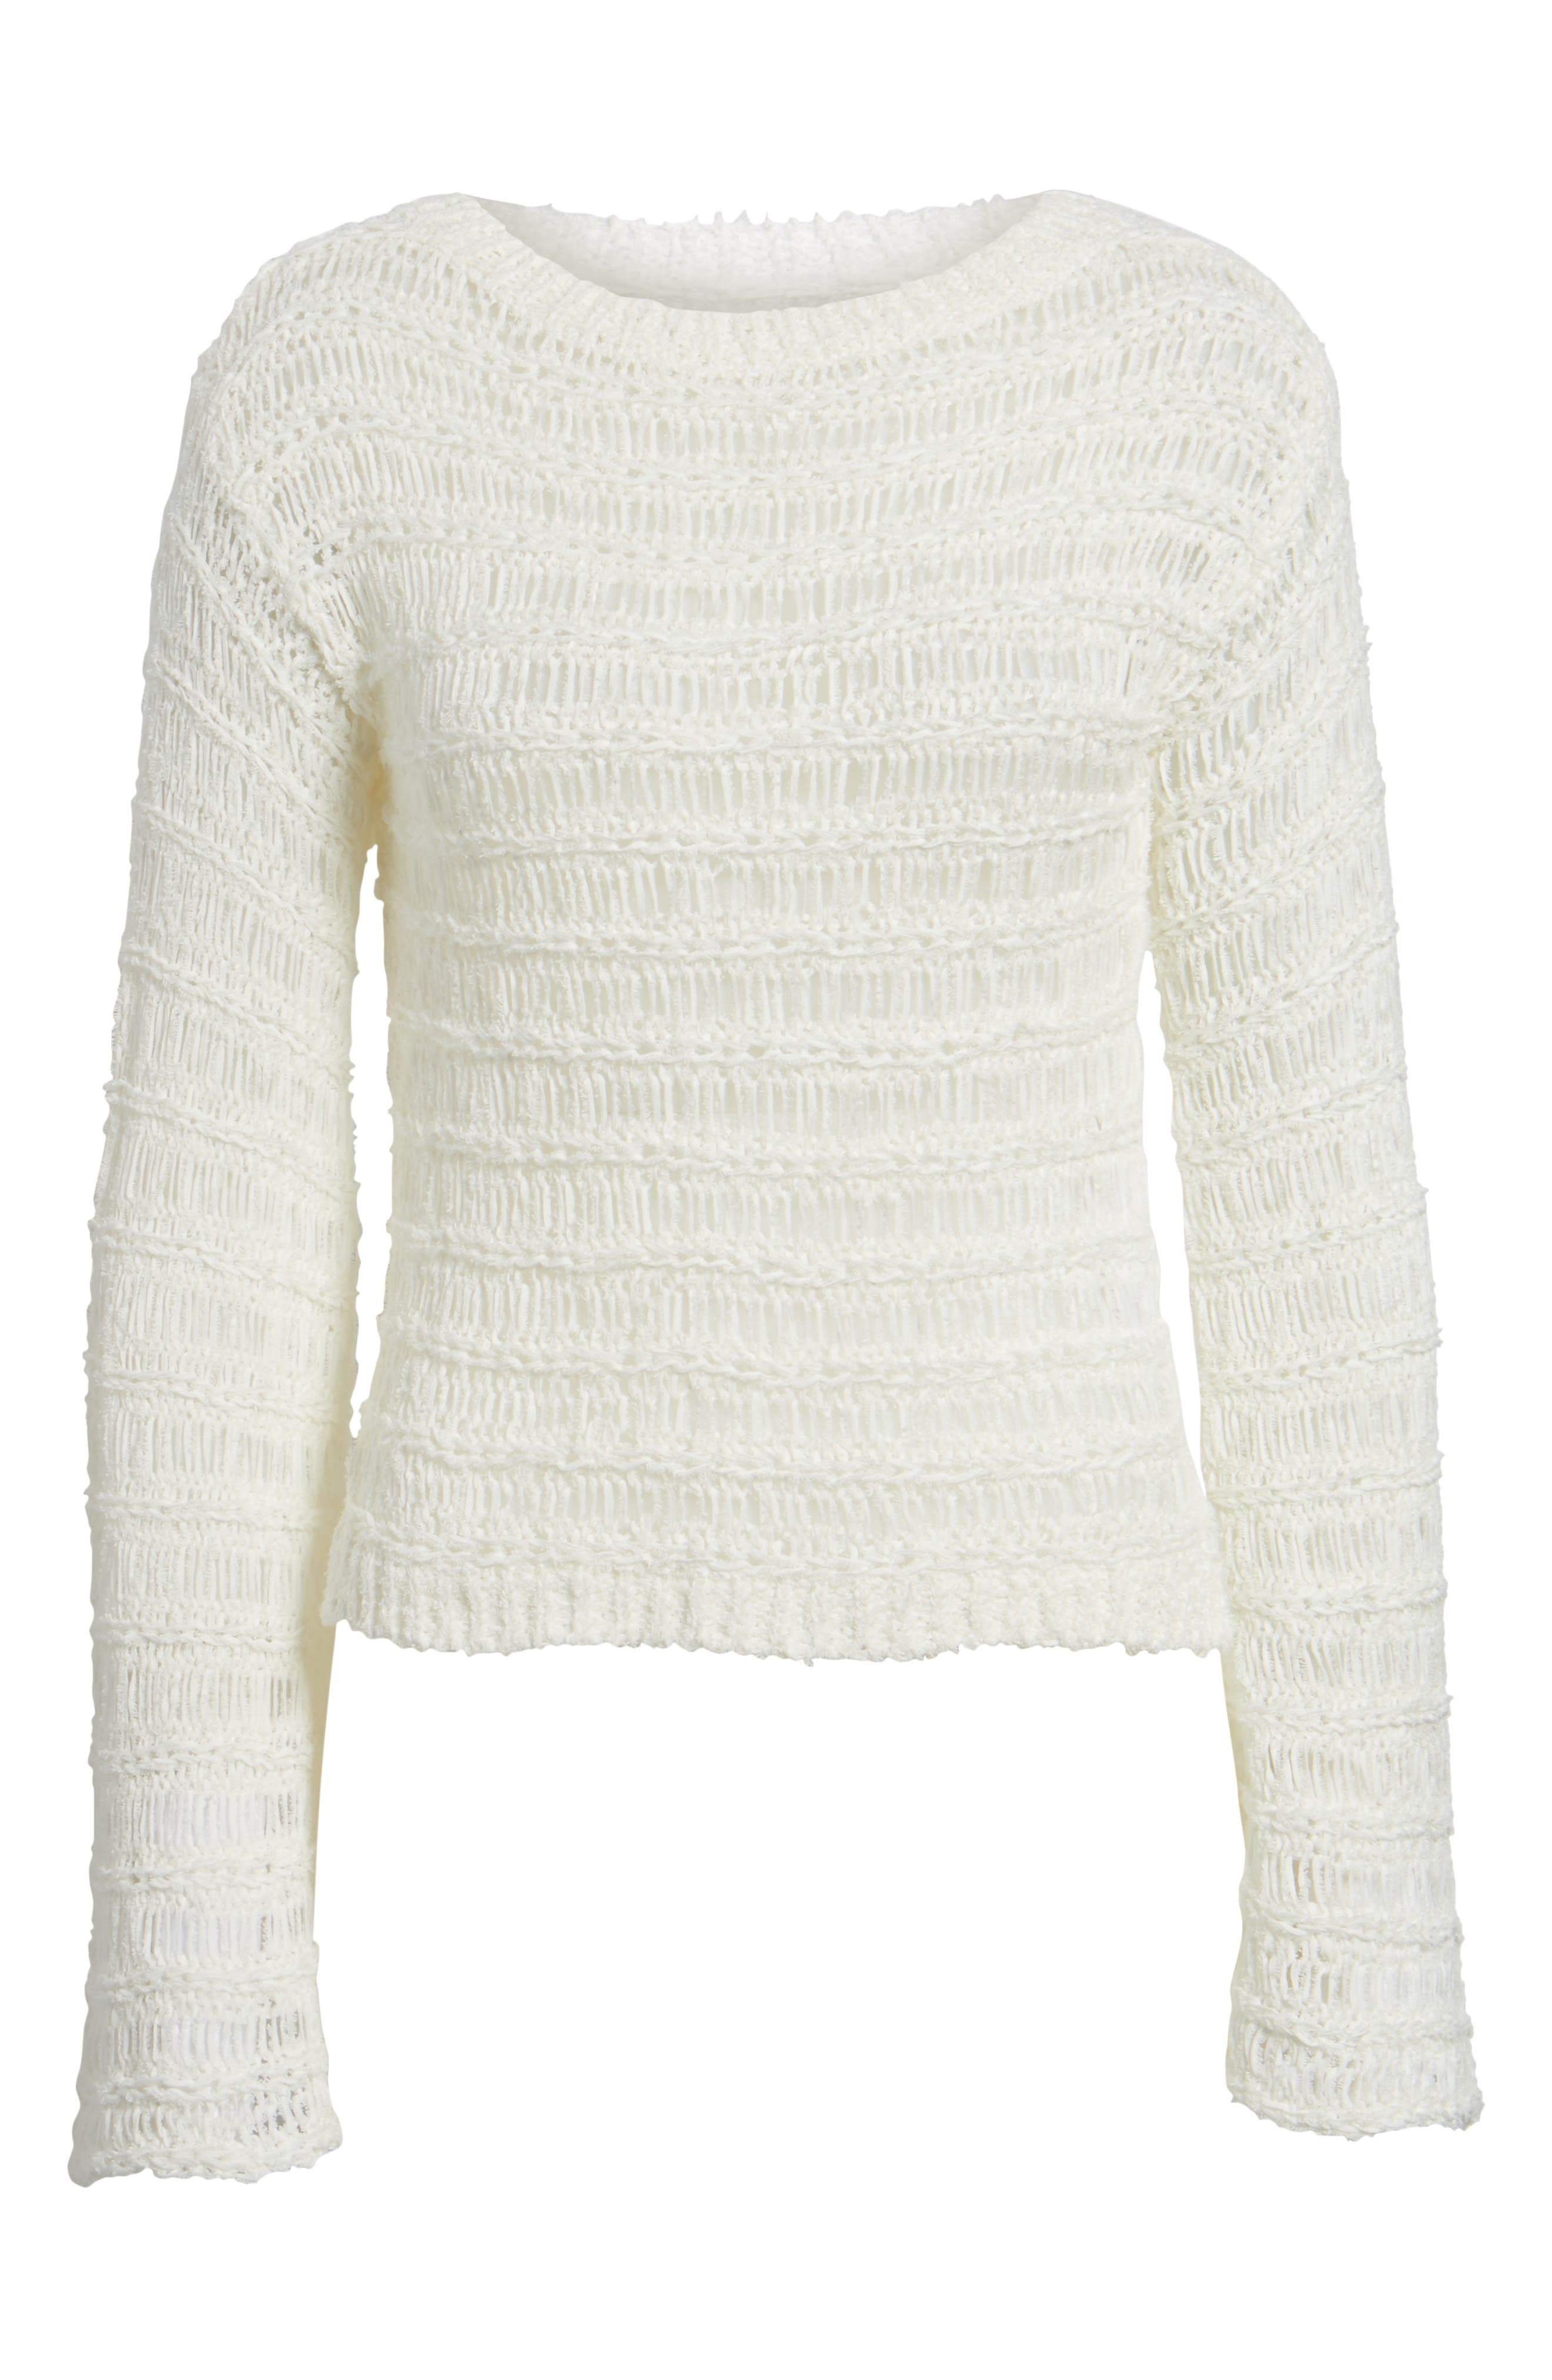 Ladder Stitch Sweater,                             Alternate thumbnail 6, color,                             Ivory